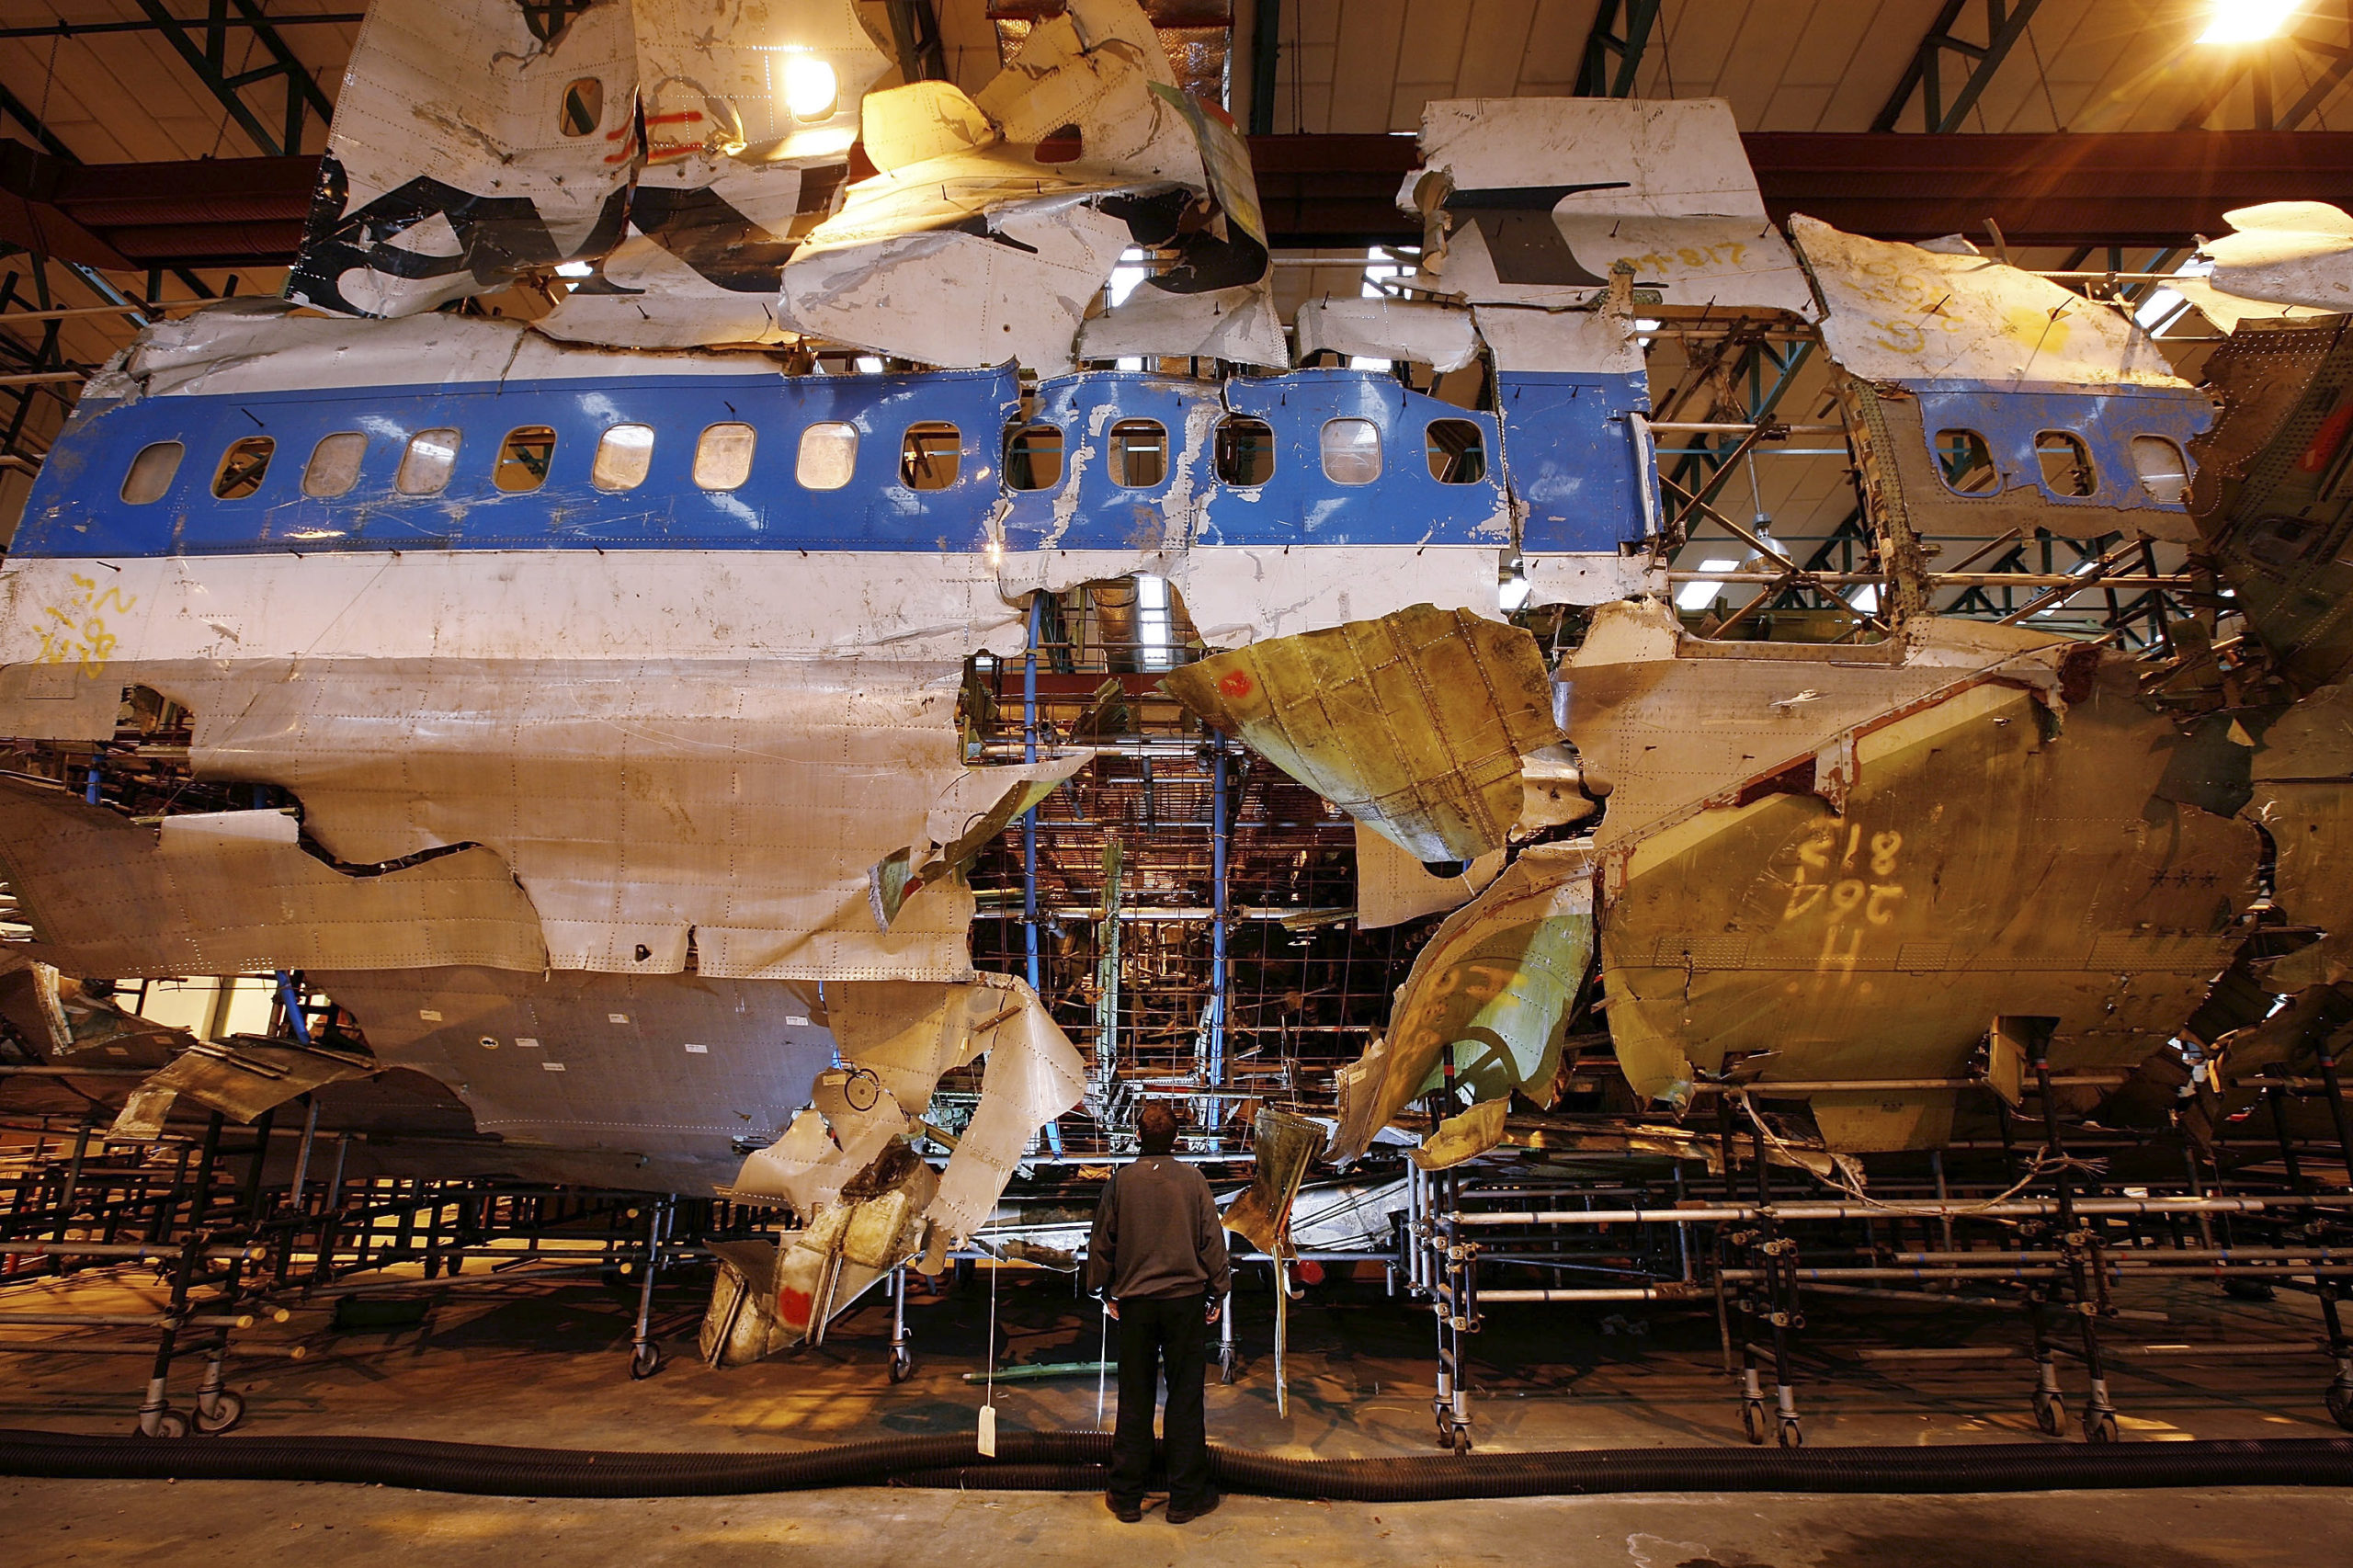 FARNBOROUGH, UNITED KINGDOM - JANUARY 15: The reconstructed remains of Pan Am flight 103 lie in a warehouse on January 15, 2008 in Farnborough, England. The Air Accident Investigation Branch have housed the remains of the Boeing 747 for the past 19 years. 20 years ago a terrorist bomb exploded on-board destroying the aircraft over the Scottish town of Lockerbie killing 270 - including 11 people on the ground. (Photo by Peter Macdiarmid/Getty Images)